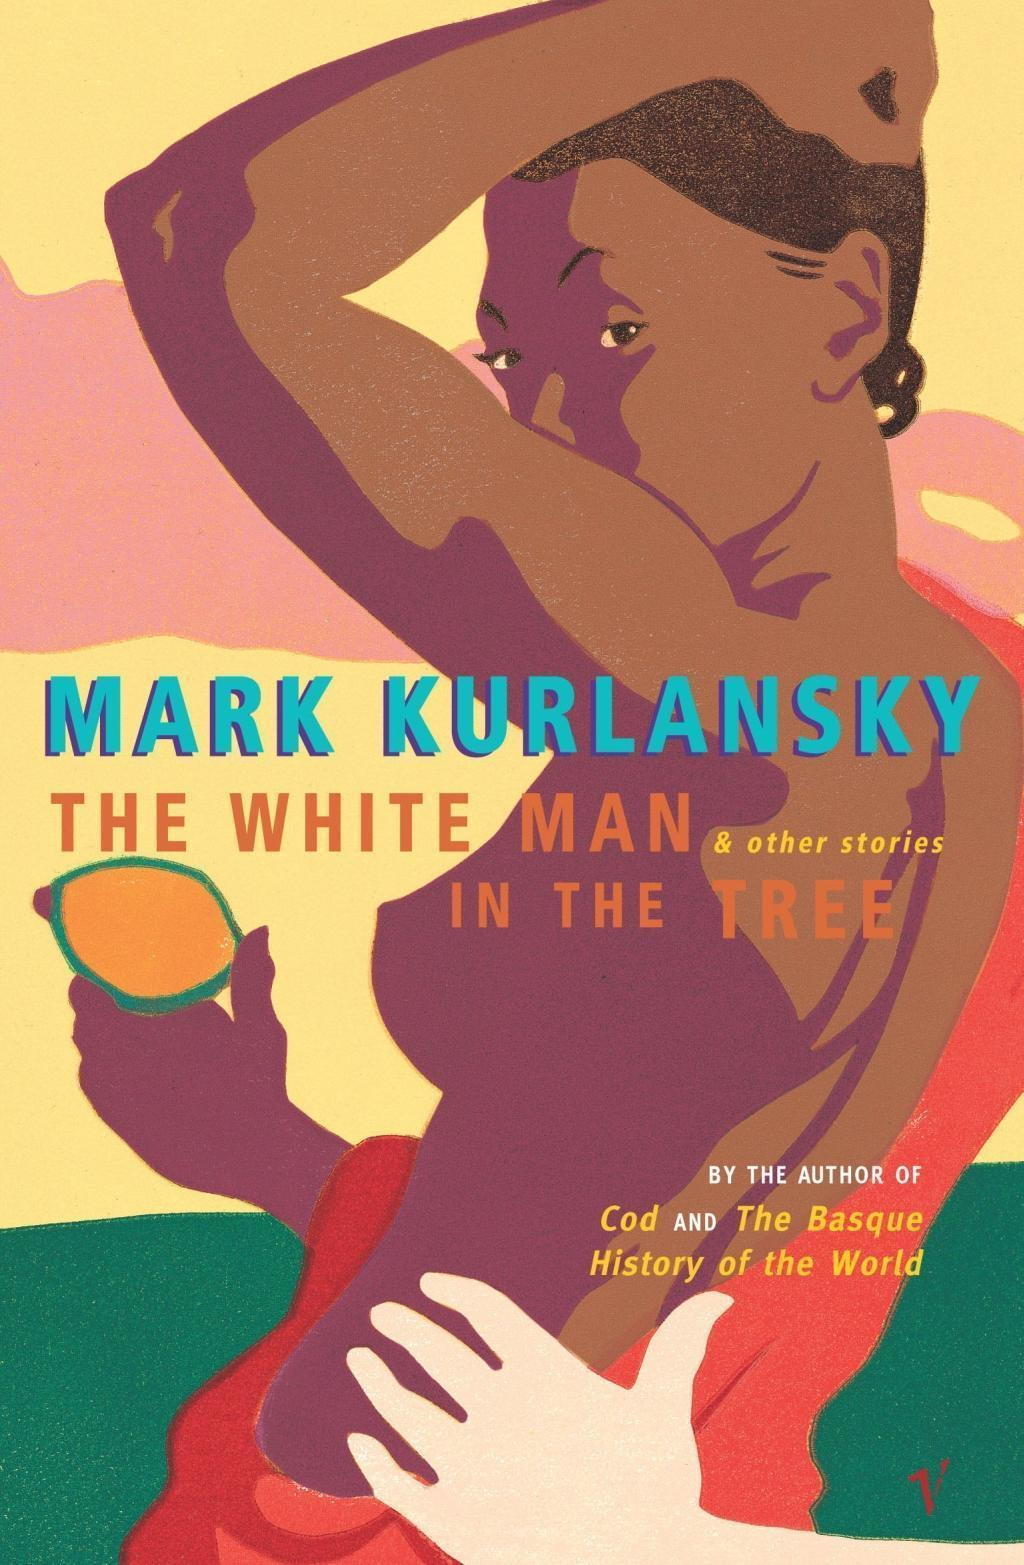 The White Man In The Tree